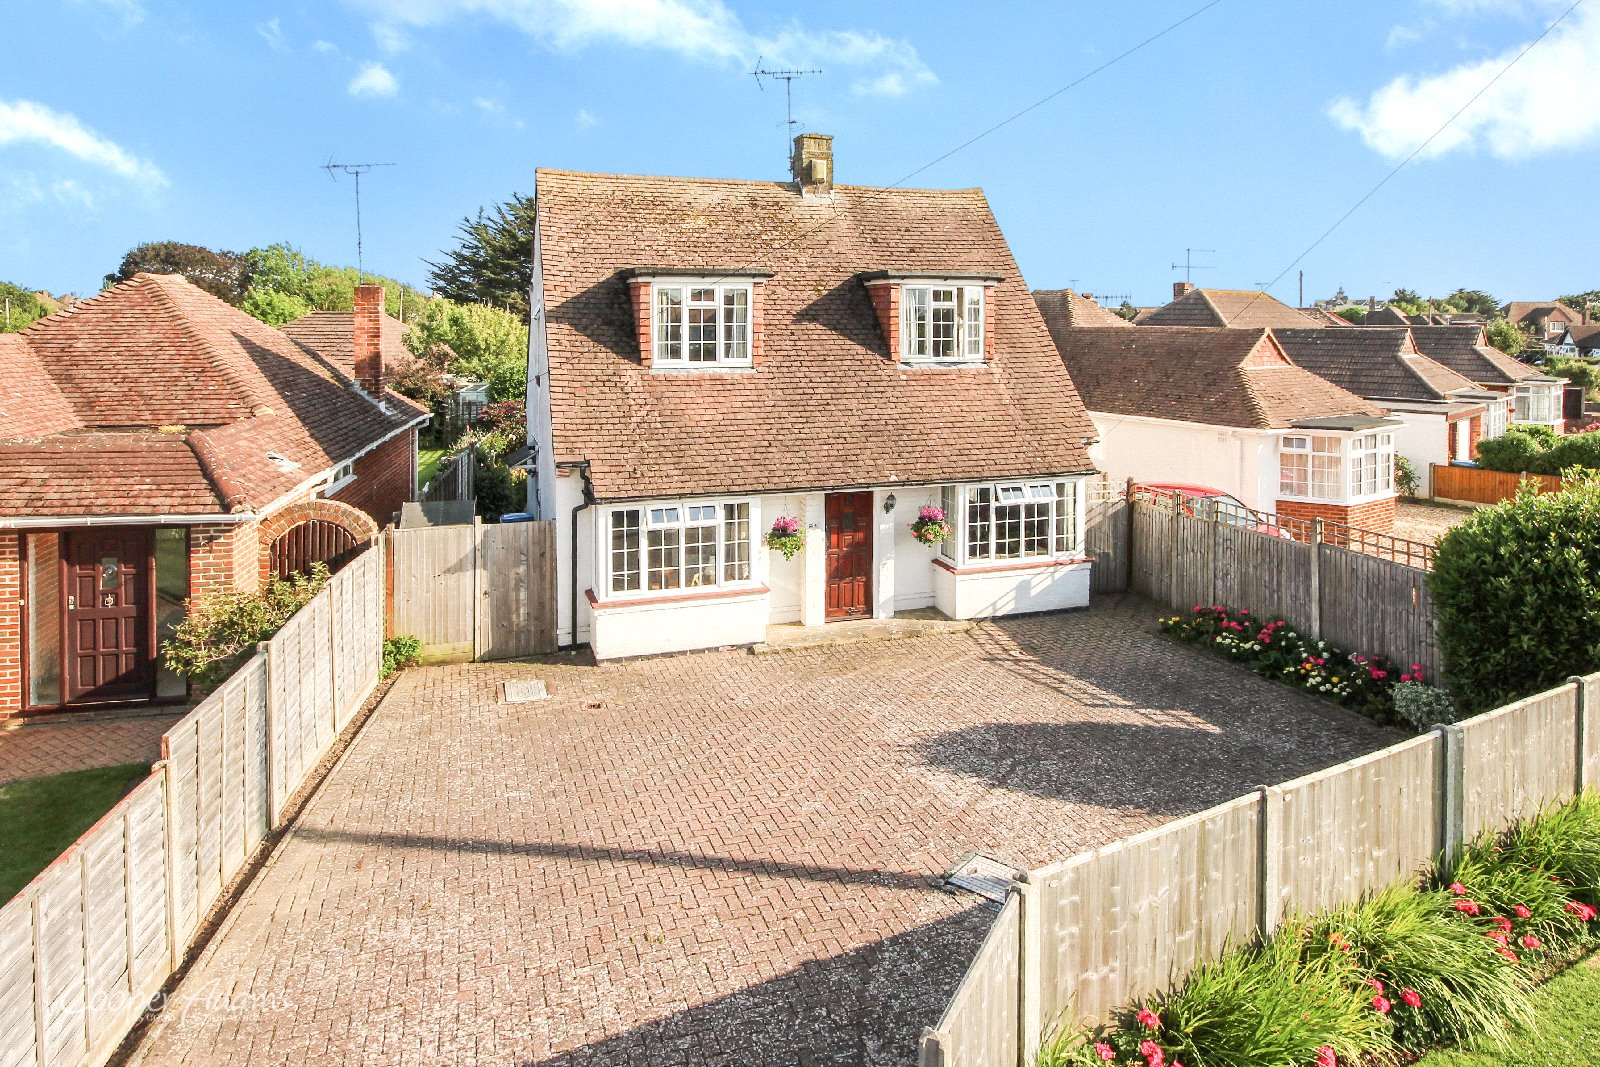 3 bed house for sale in The Crescent, Rustington, BN16